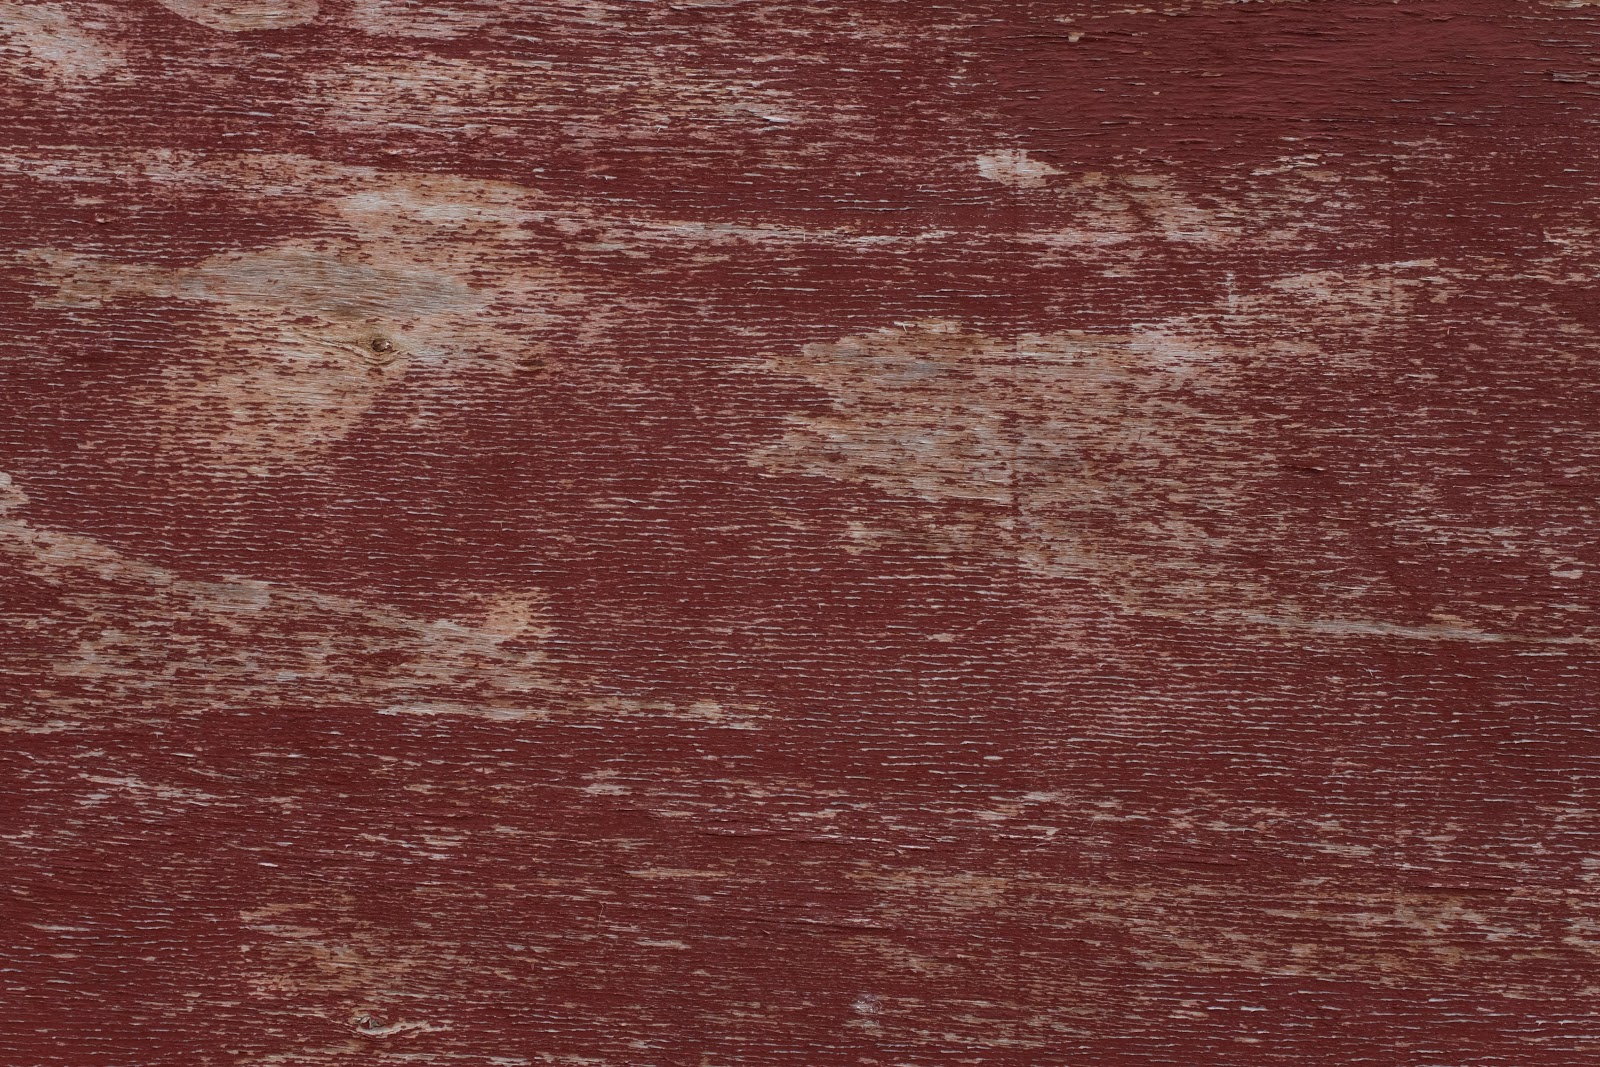 High Resolution Seamless Textures: Red Paint Wood Texture ...